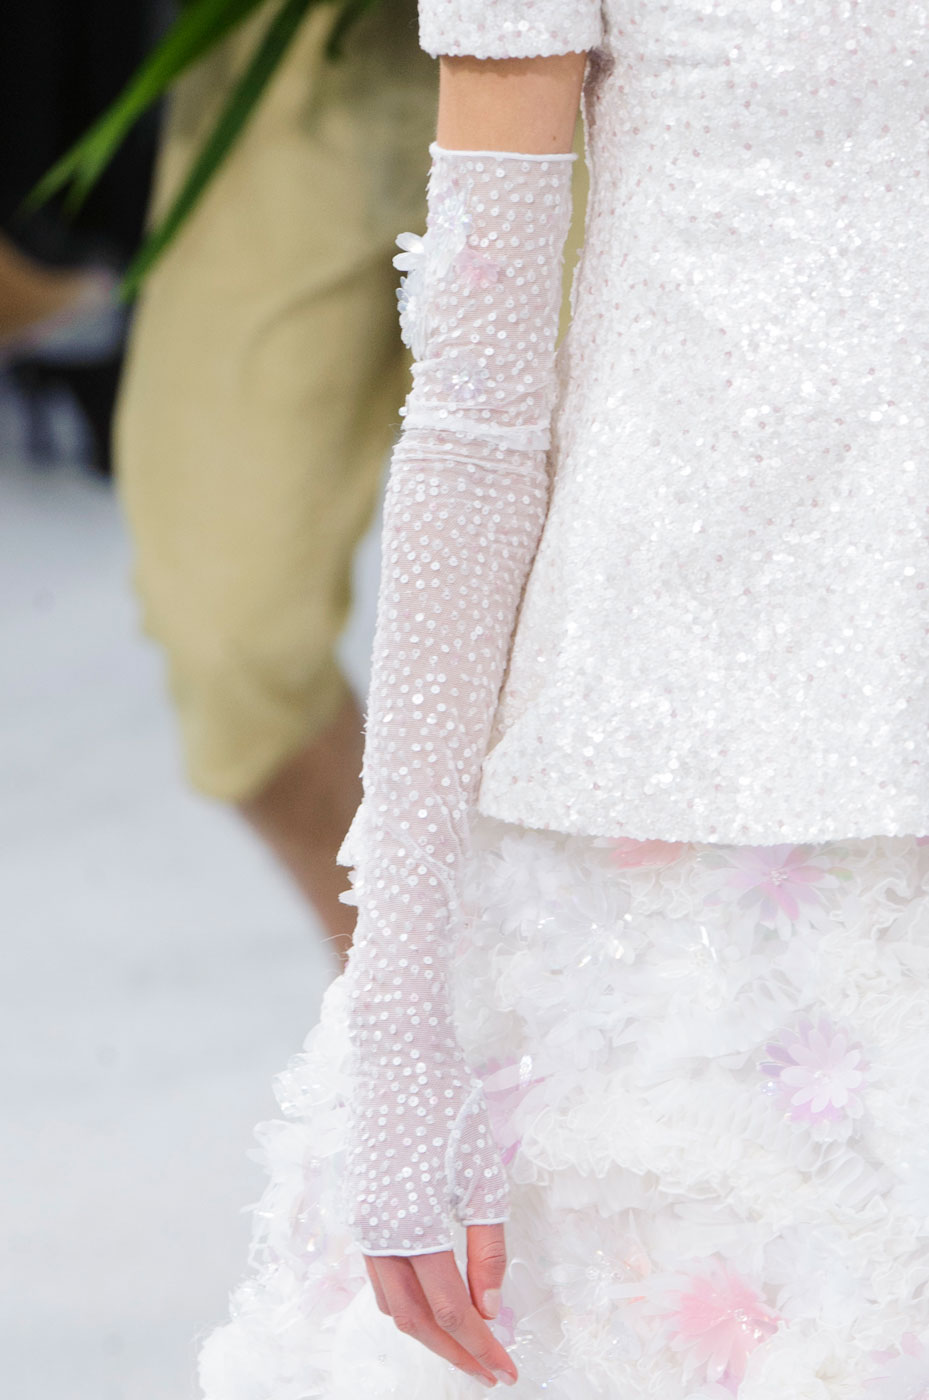 Chanel-fashion-runway-show-close-ups-haute-couture-paris-spring-summer-2015-the-impression-146